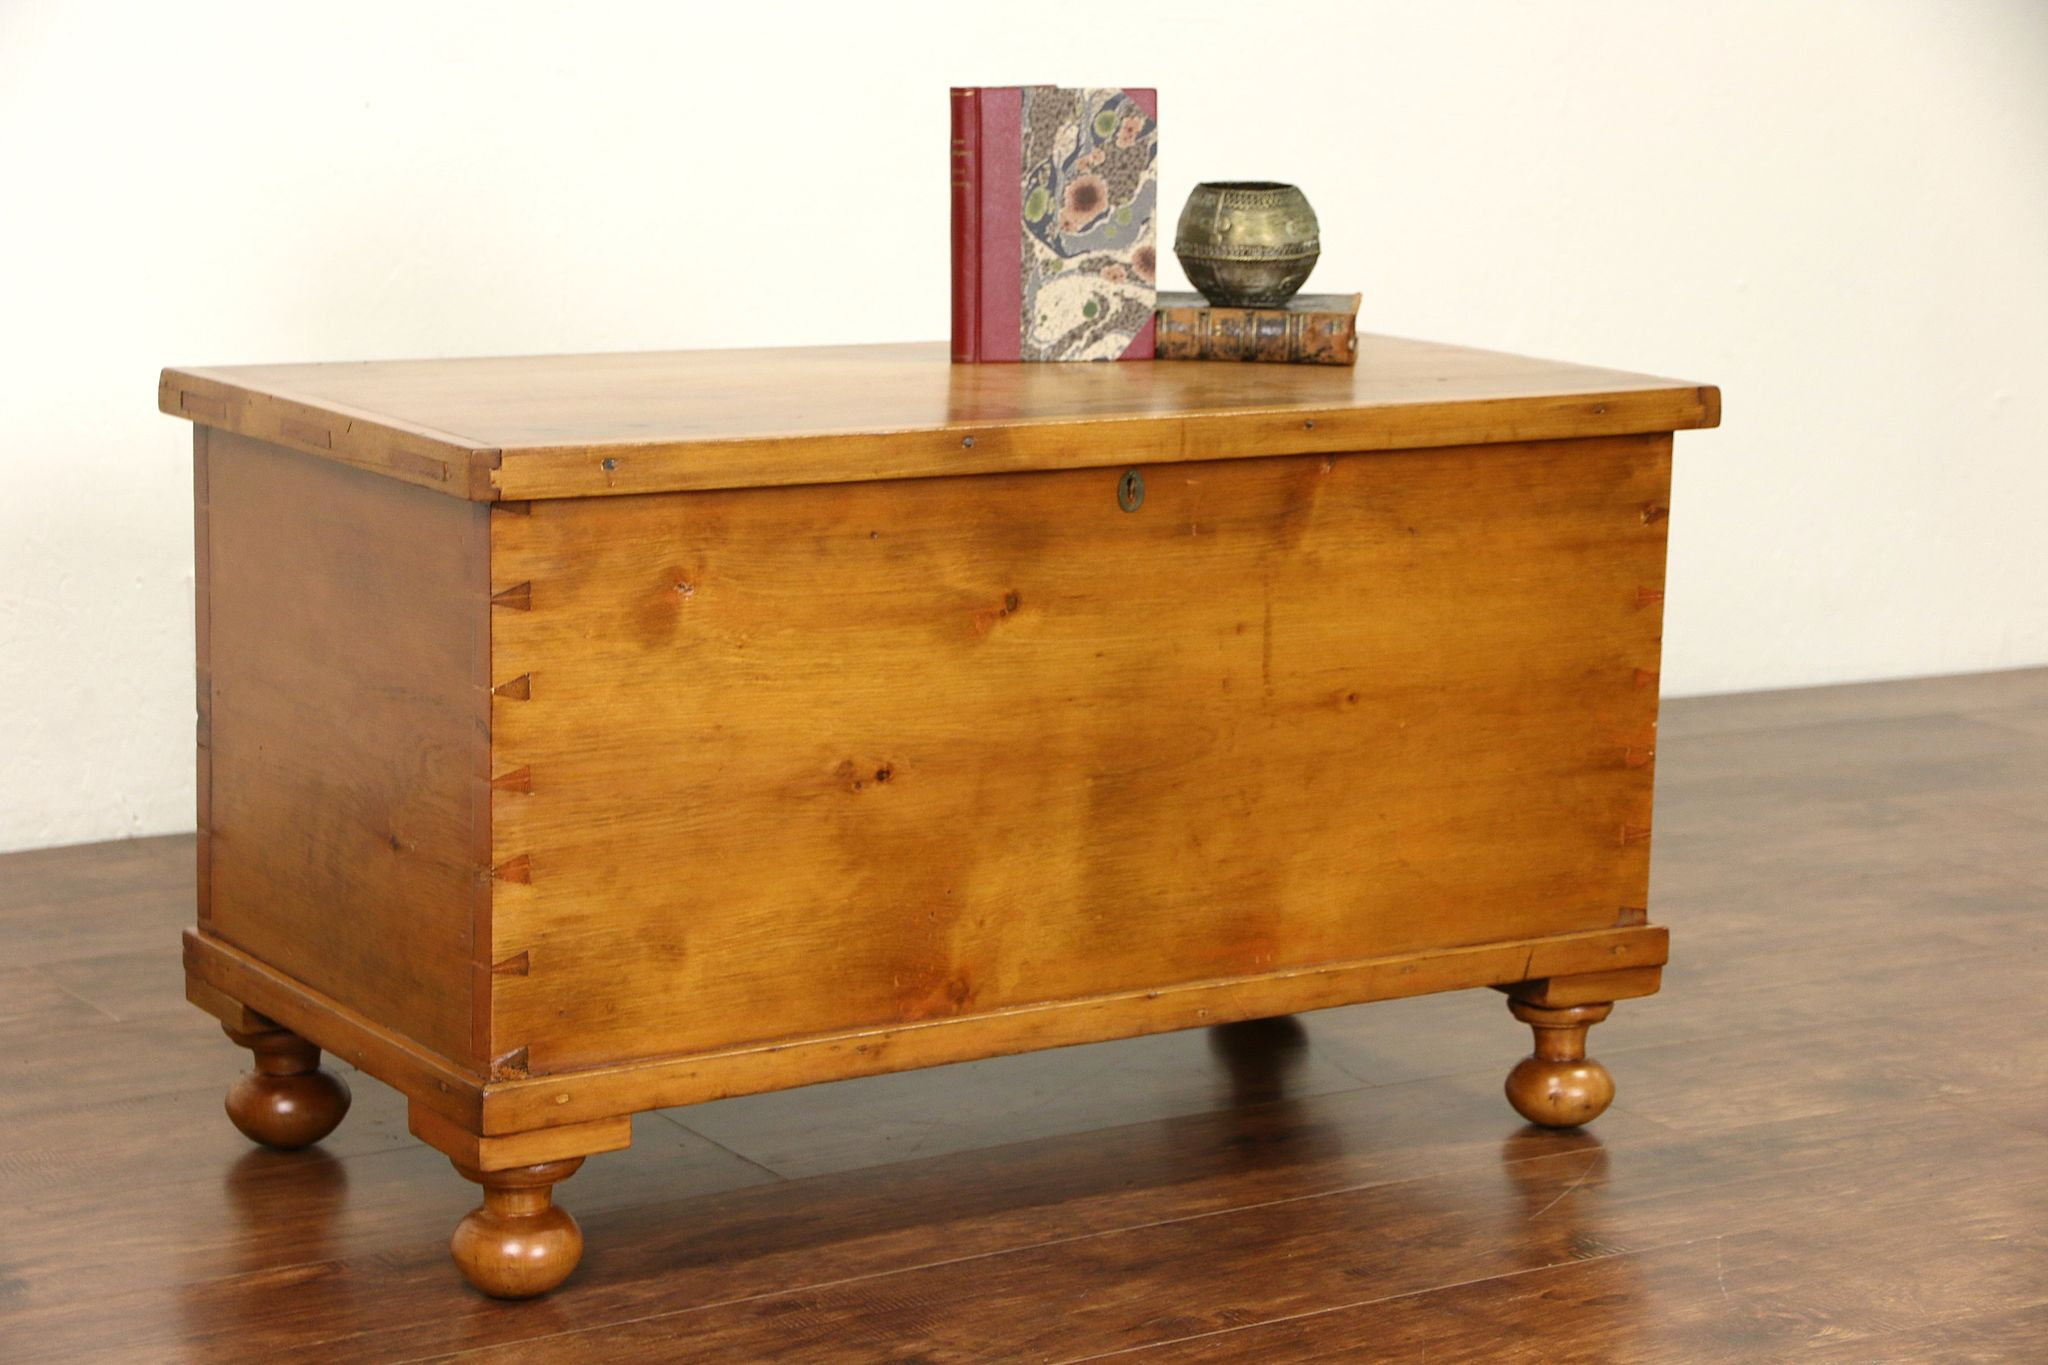 SOLD Country Pine 6 Board 1850 Antique Trunk Blanket